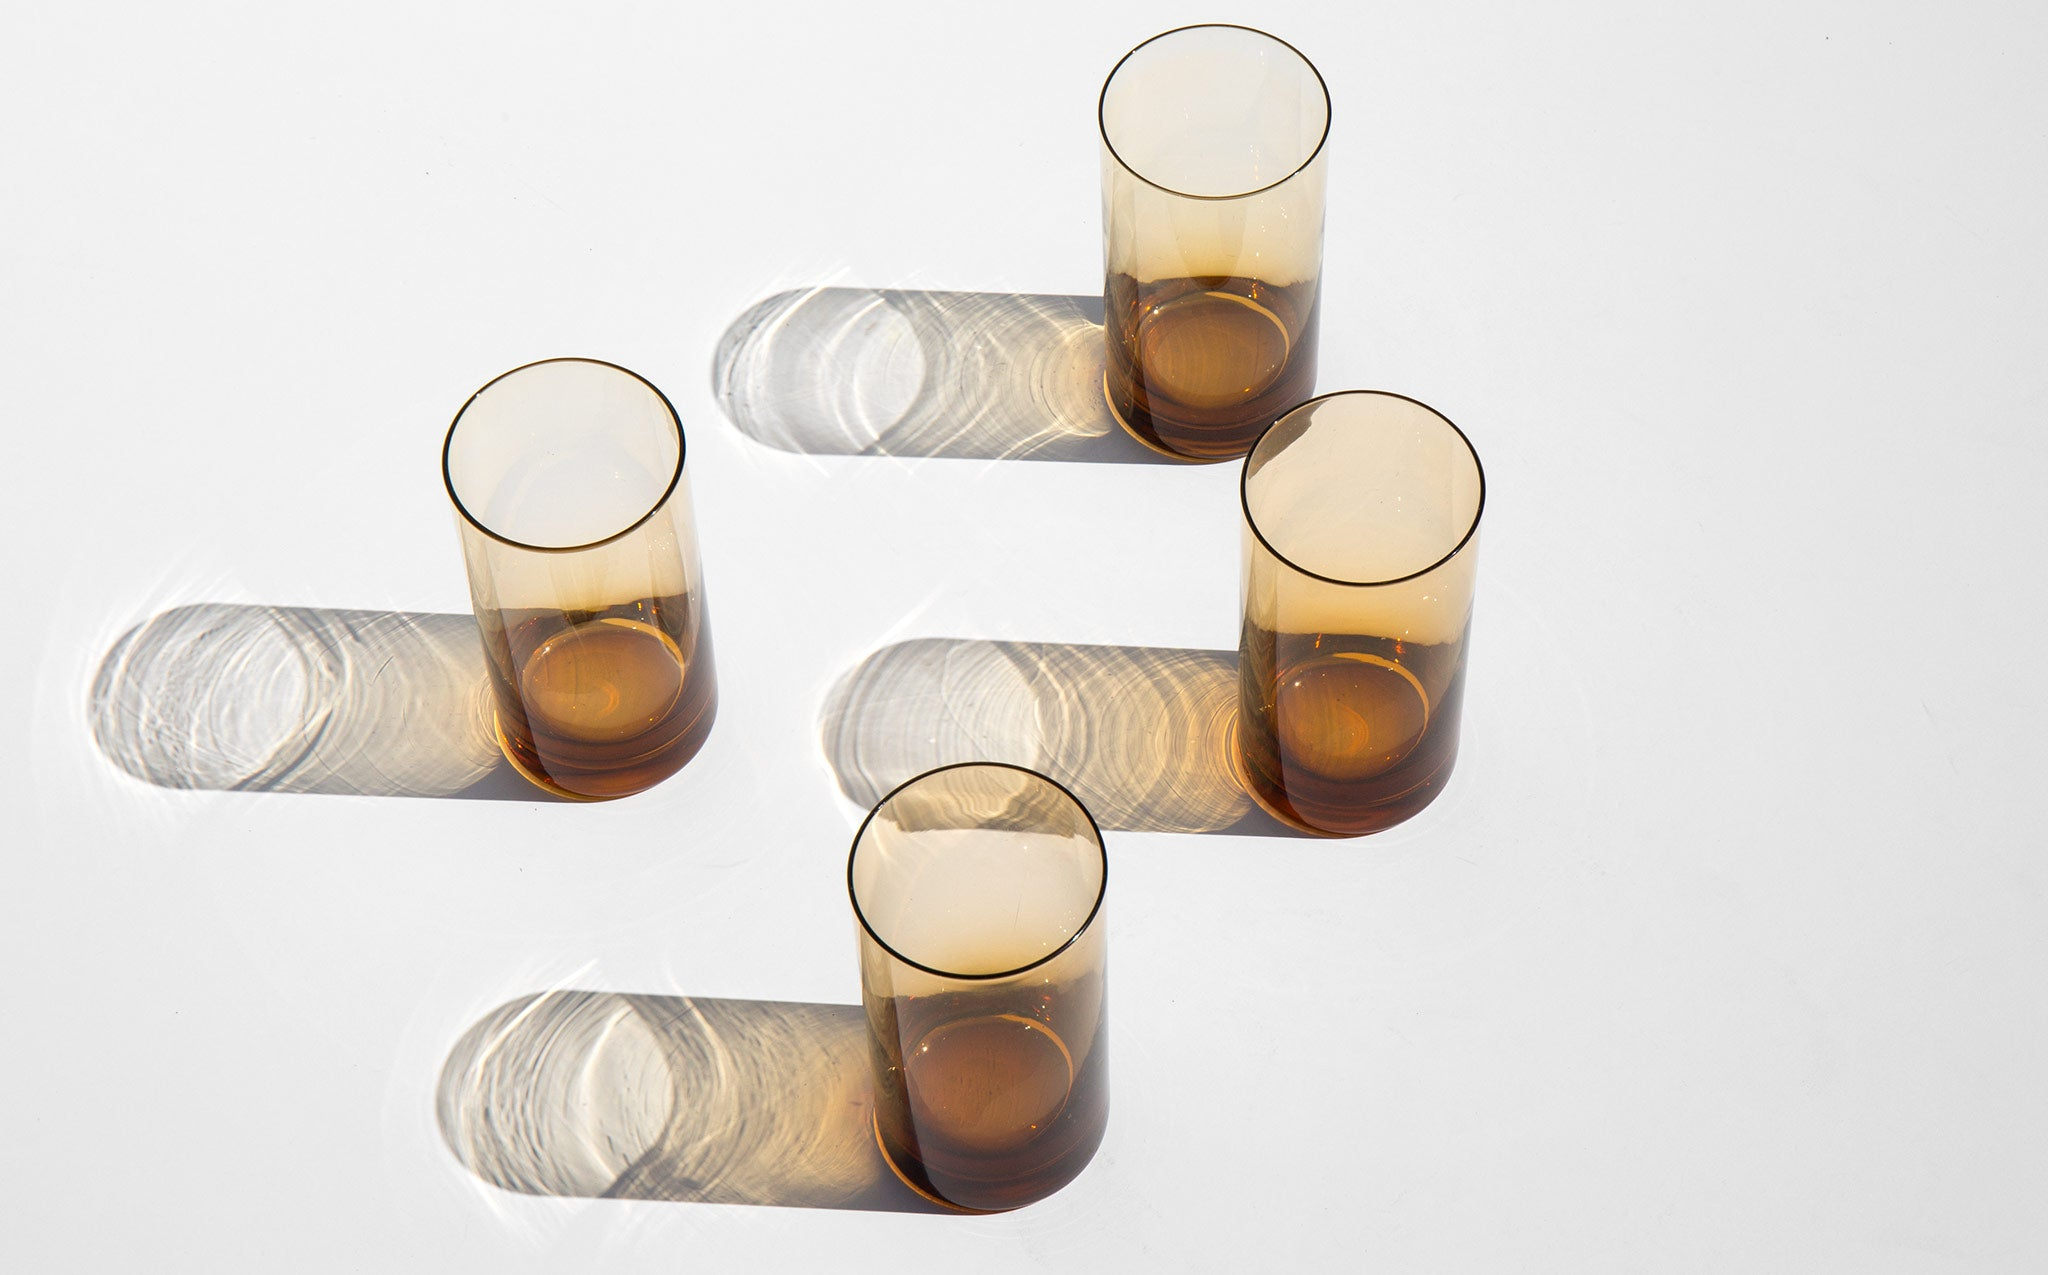 Translucent Amber Glasses